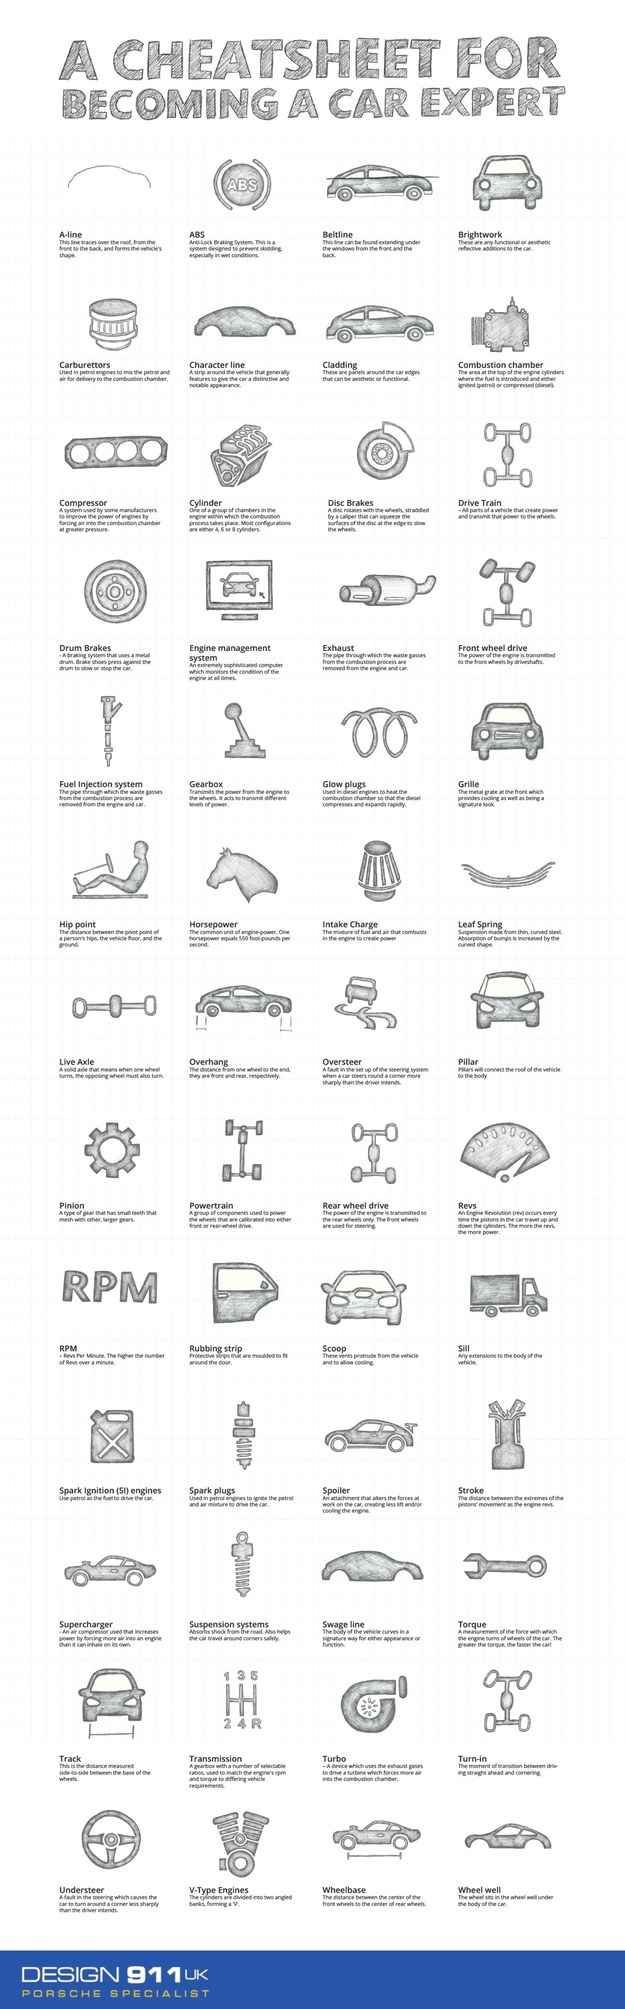 21 genius car cheat sheets every driver needs to see cars car